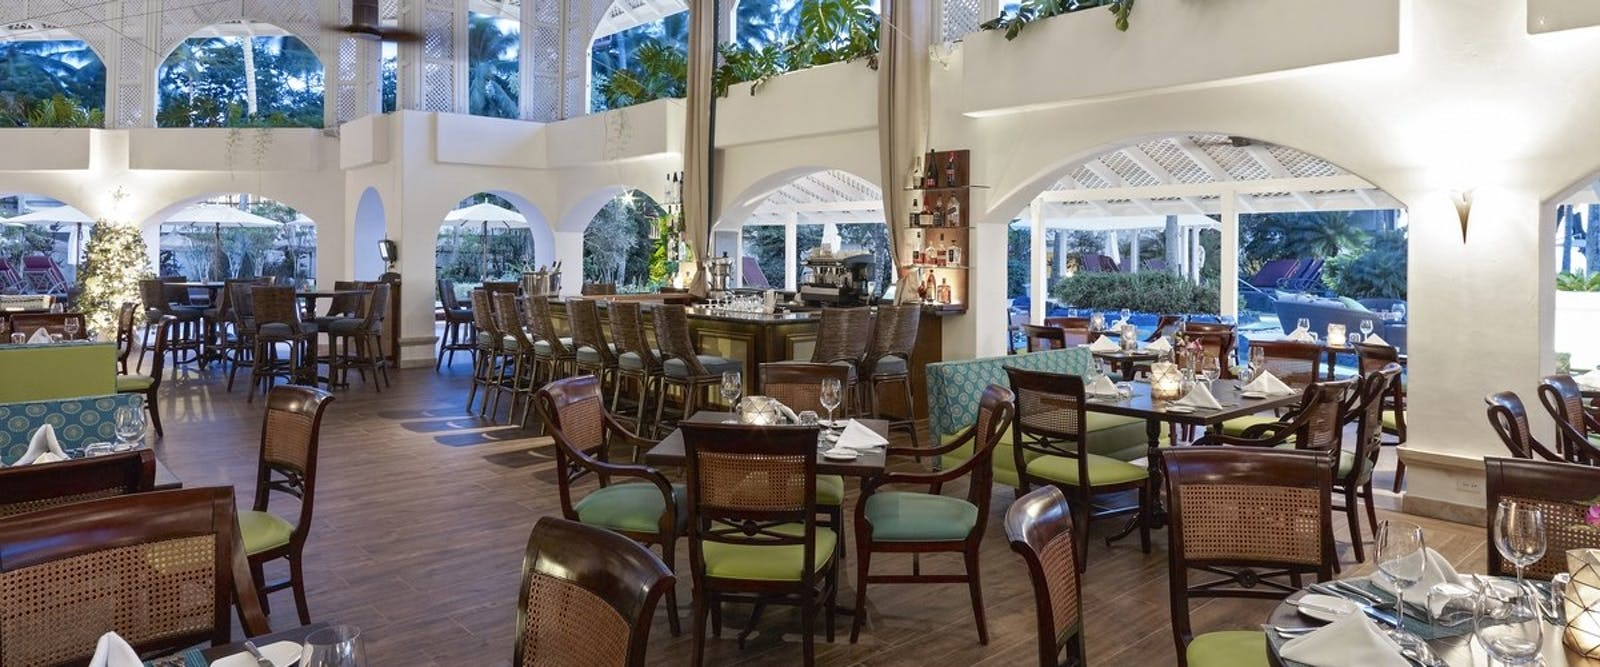 Laguna Restaurant at Colony Club by Elegant Hotels, Barbados, Caribbean